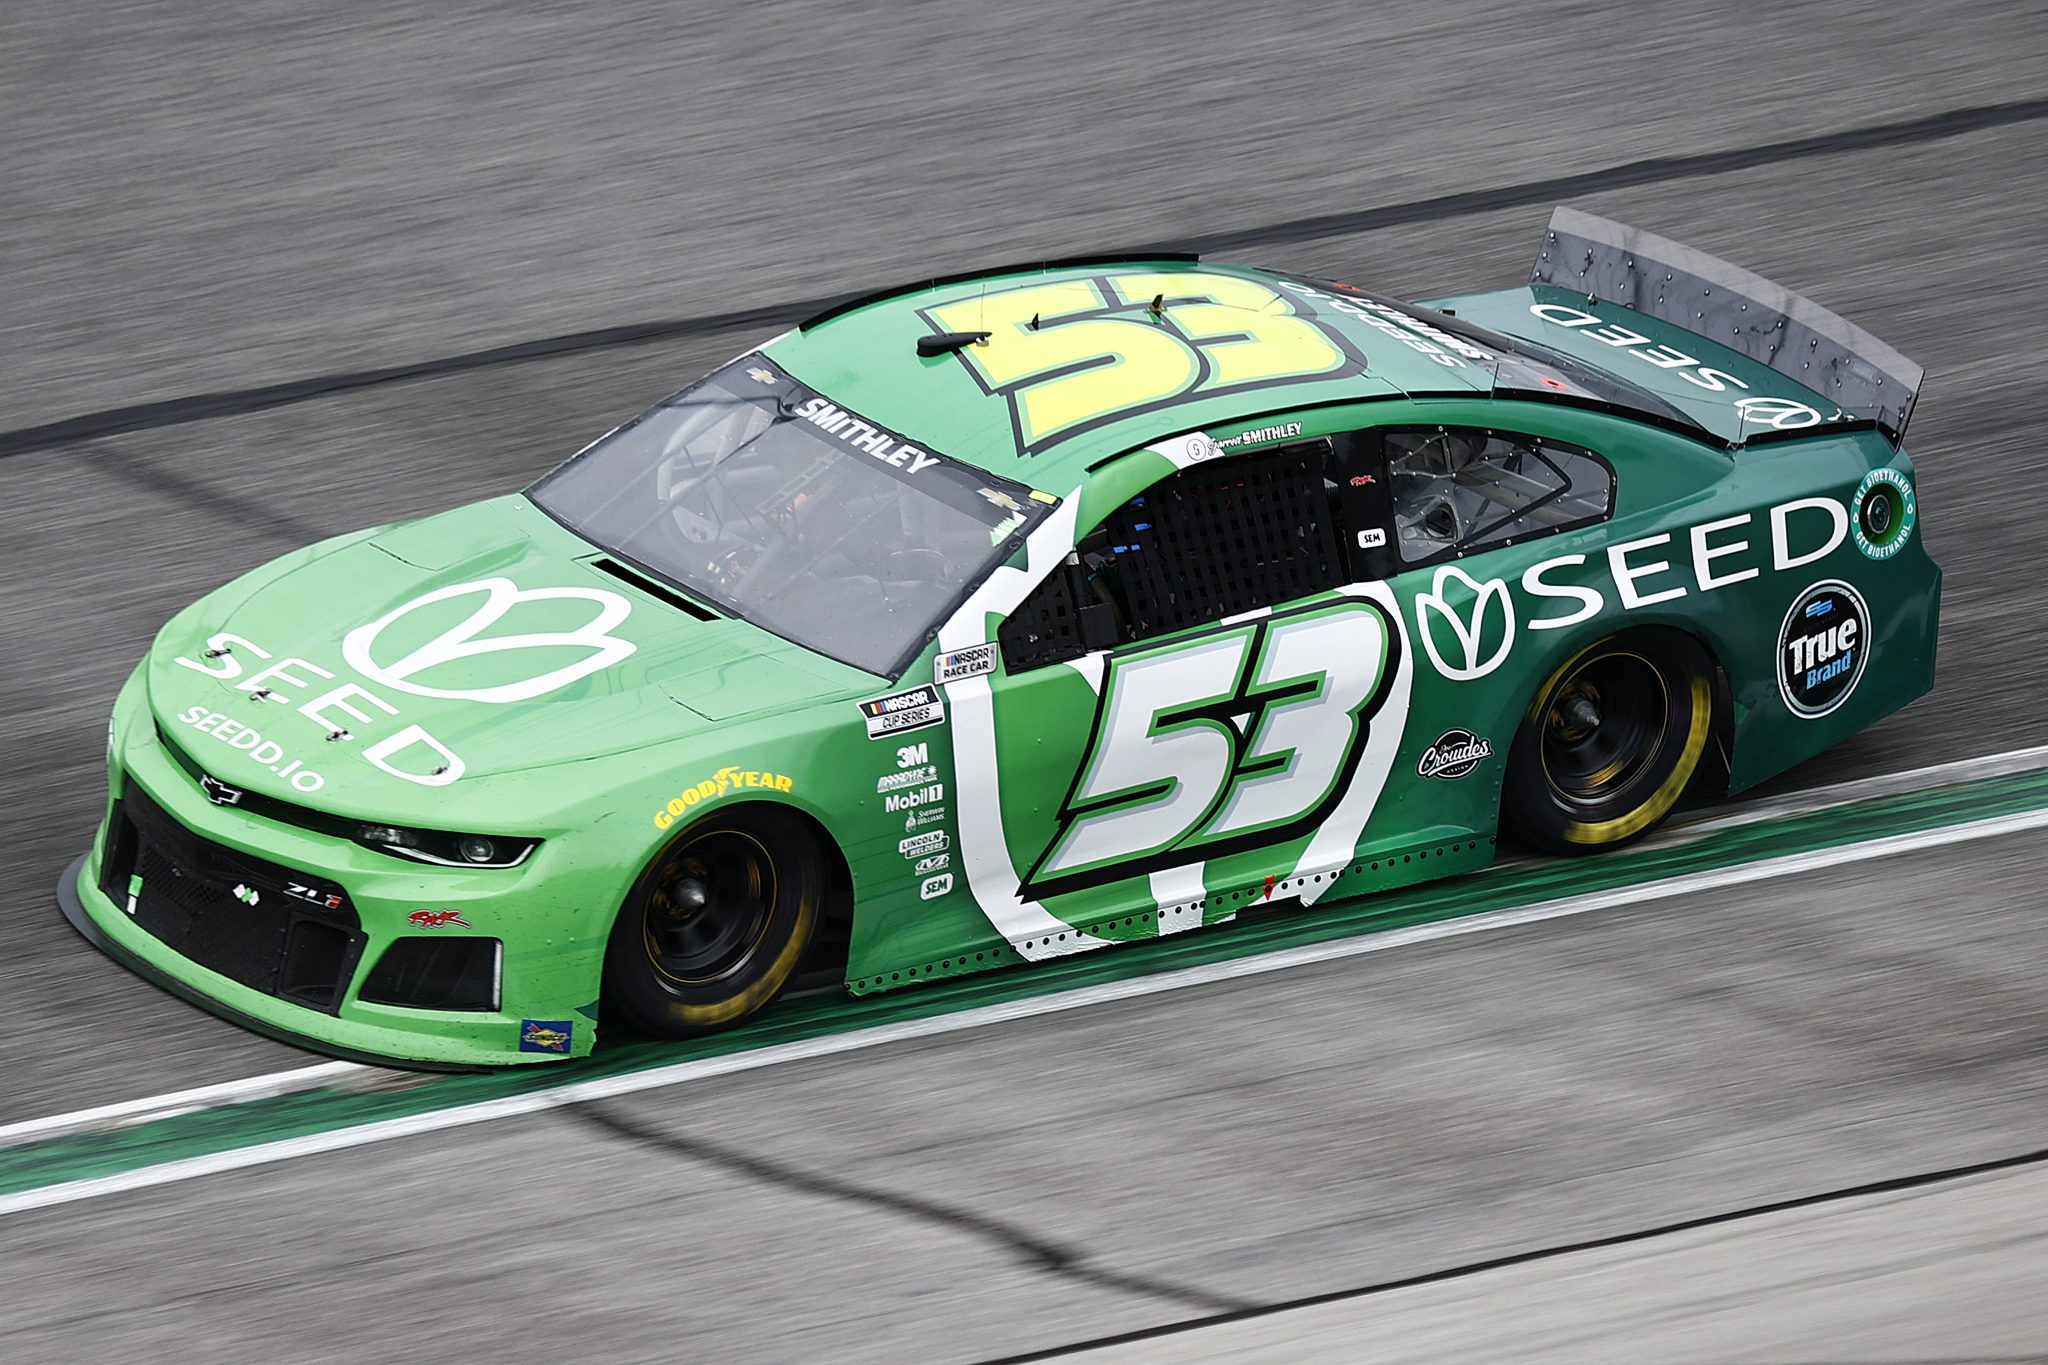 HAMPTON, GEORGIA - JULY 11: Garrett Smithley, driver of the #53 SEED Token Chevrolet, drives during the NASCAR Cup Series Quaker State 400 presented by Walmart at Atlanta Motor Speedway on July 11, 2021 in Hampton, Georgia. (Photo by Jared C. Tilton/Getty Images) | Getty Images